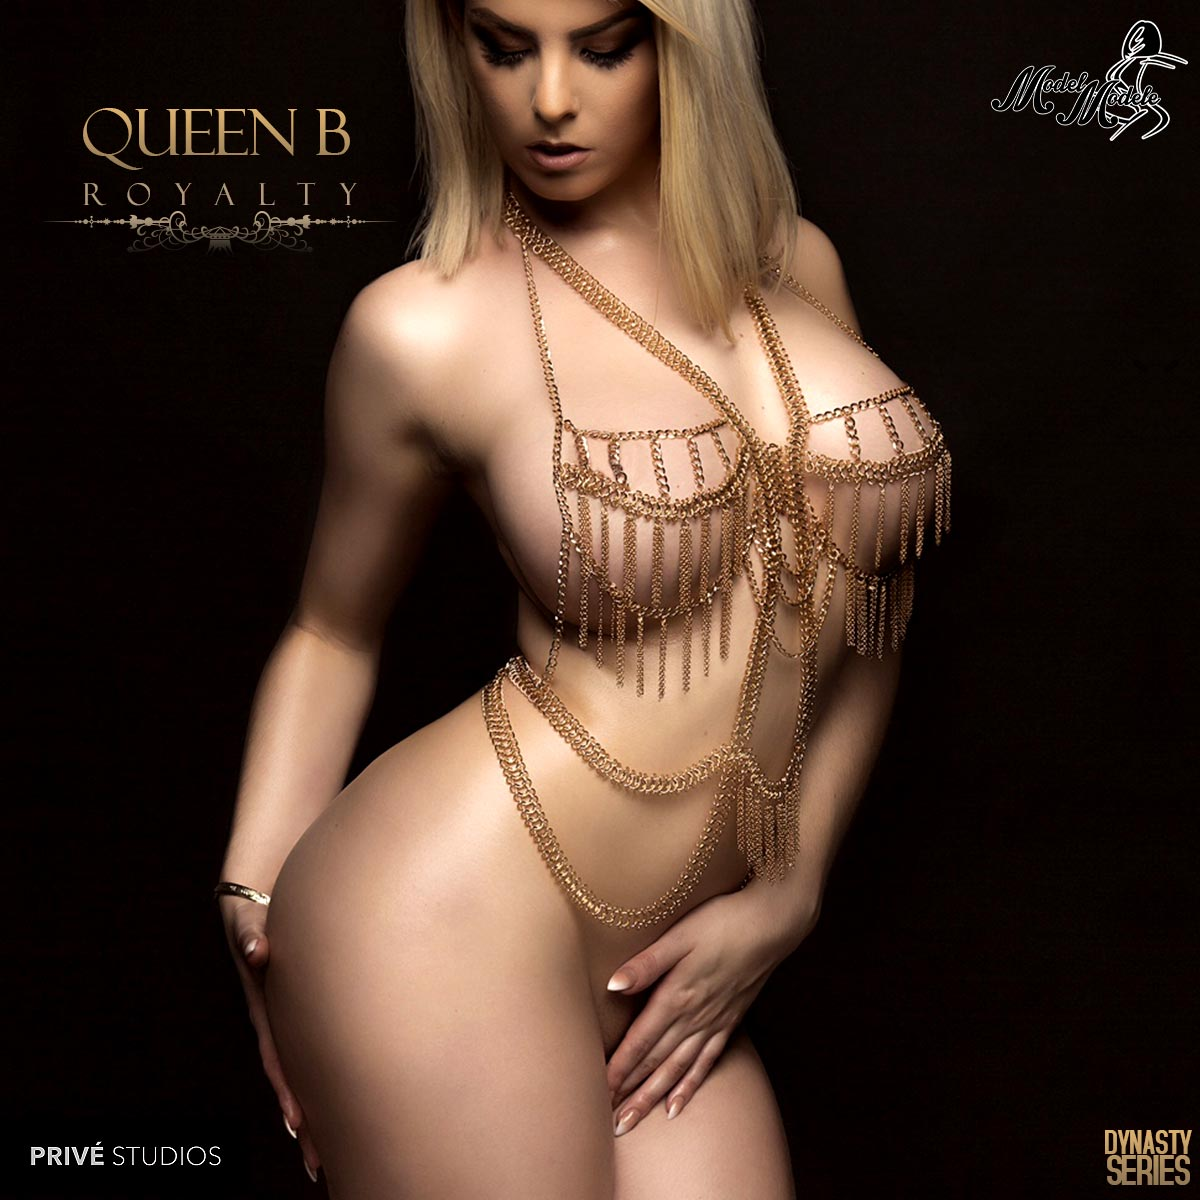 queen b jewels and tits - foxhq